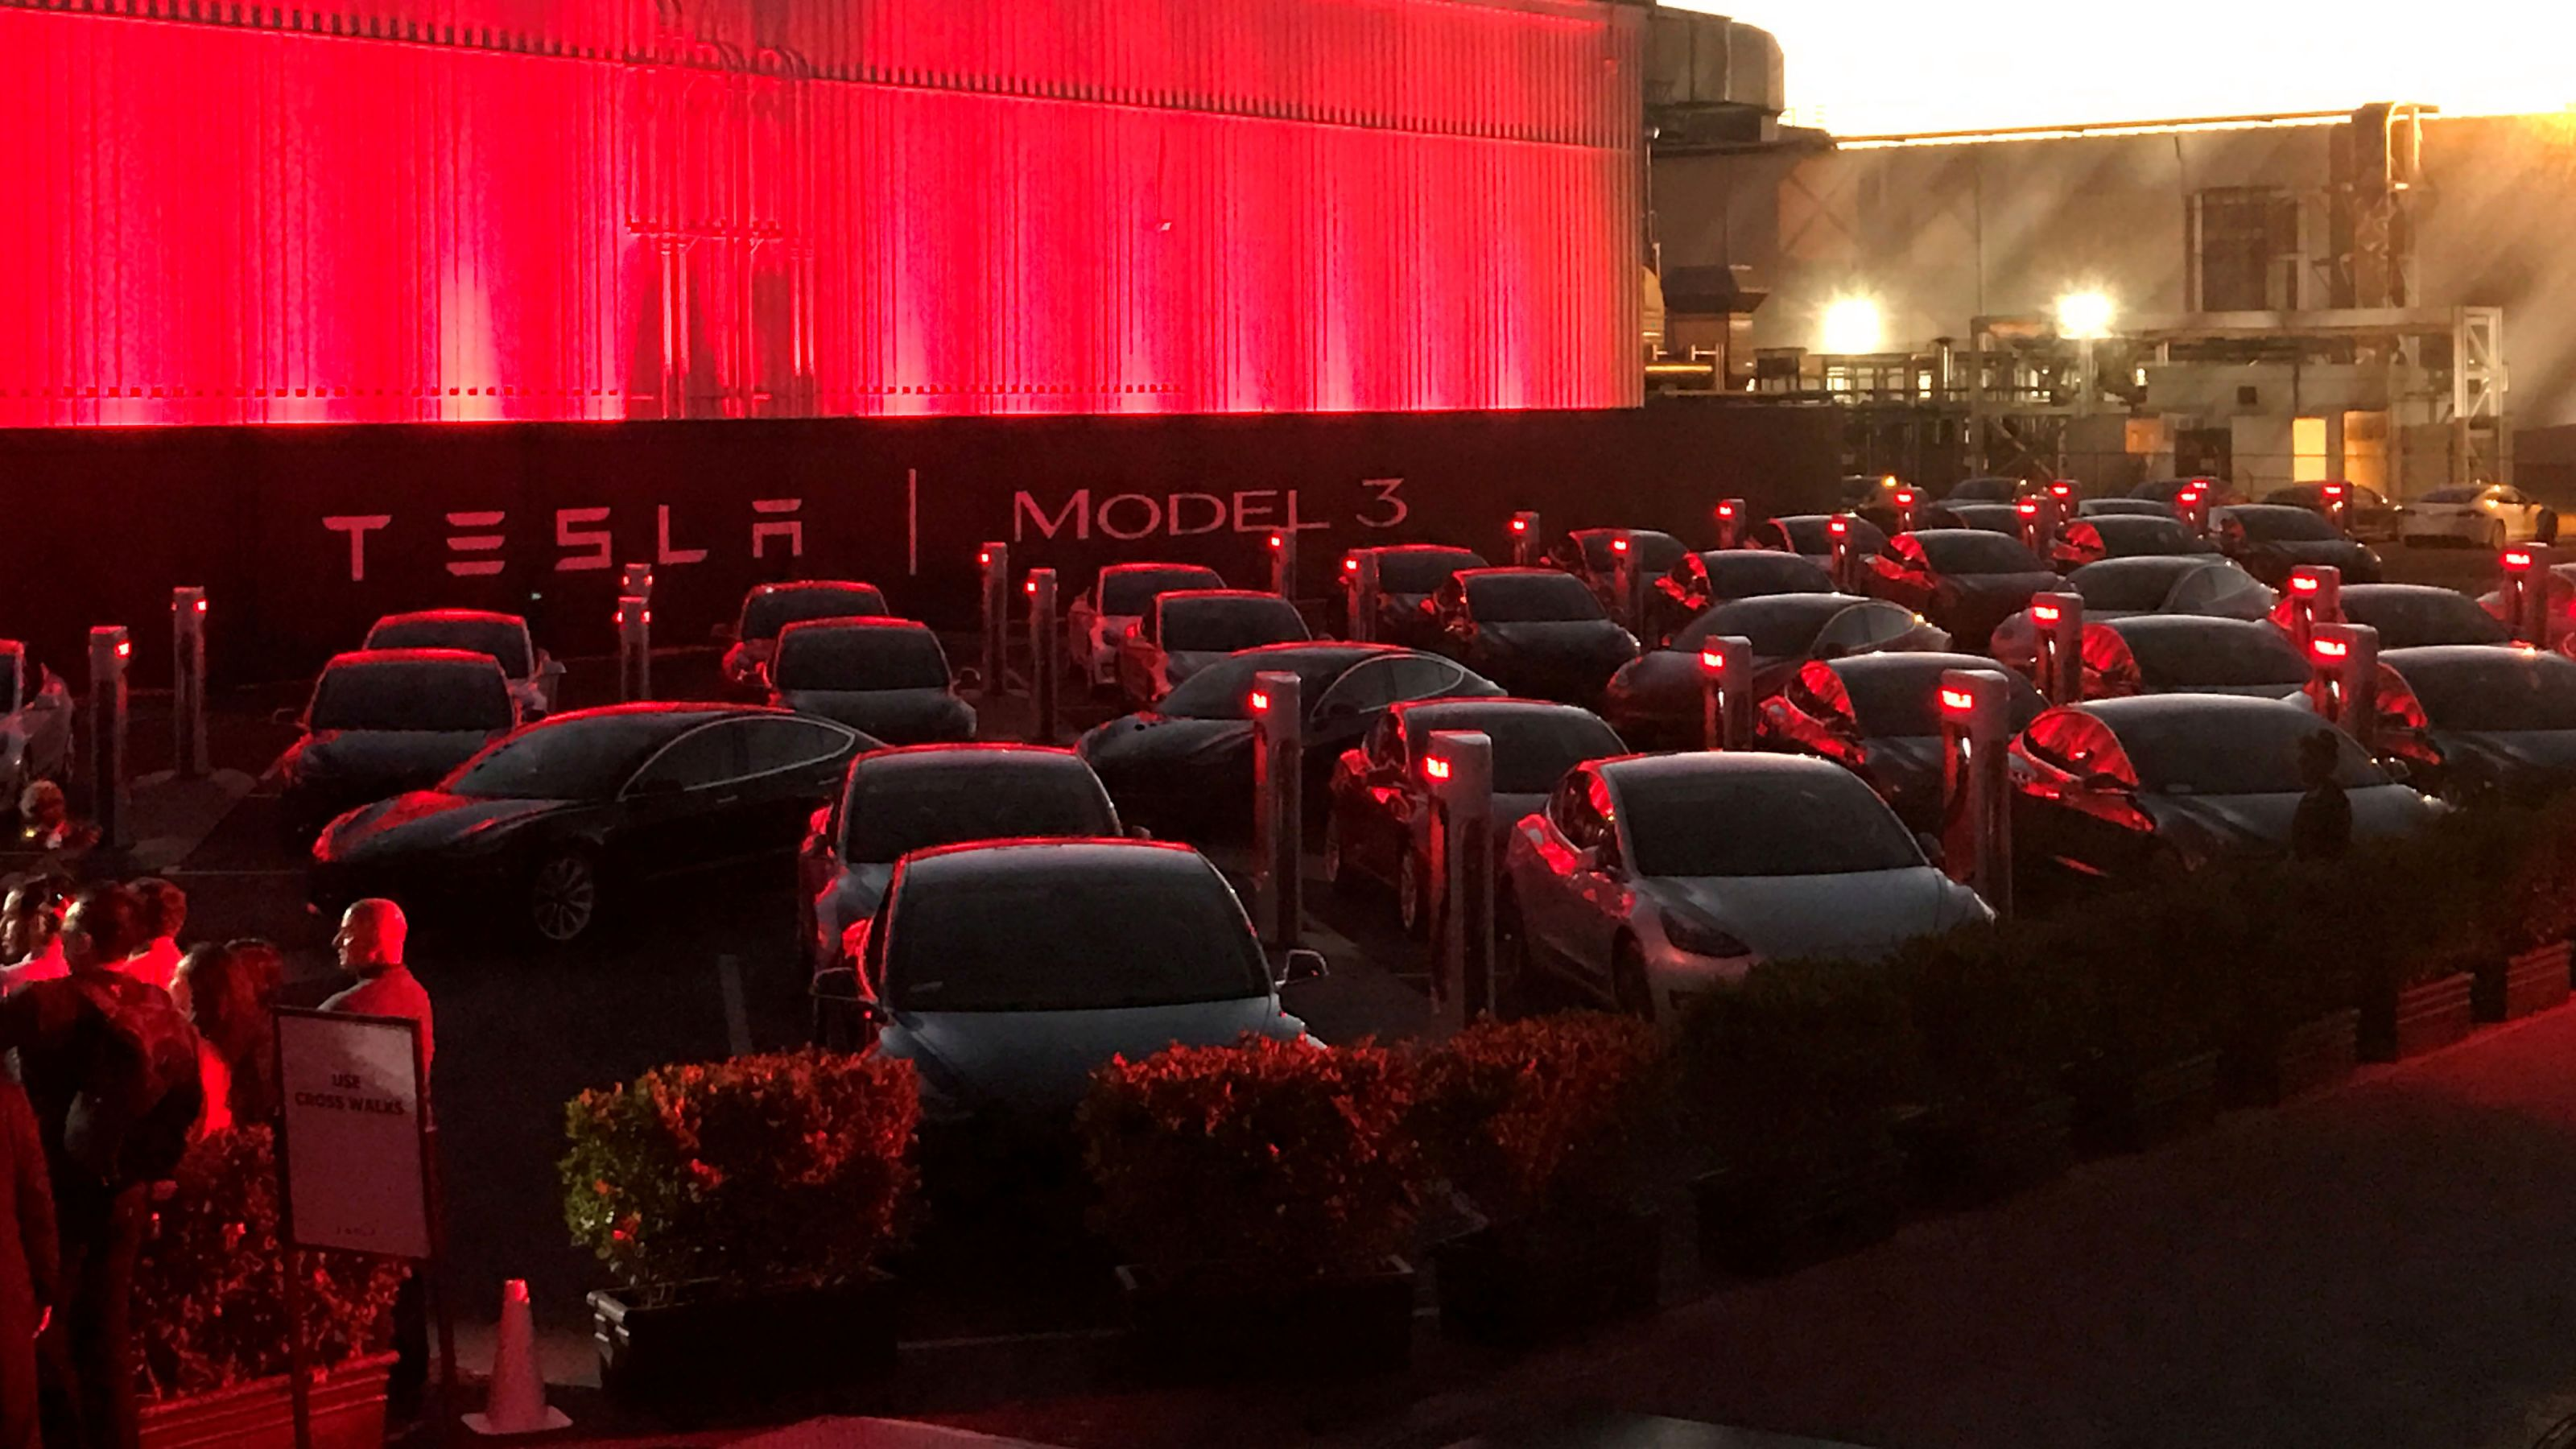 Tesla Model 3 cars wait for their new owners as they come off the Fremont factory's production line during an event at the company's facilities in Fremont, California, U.S.